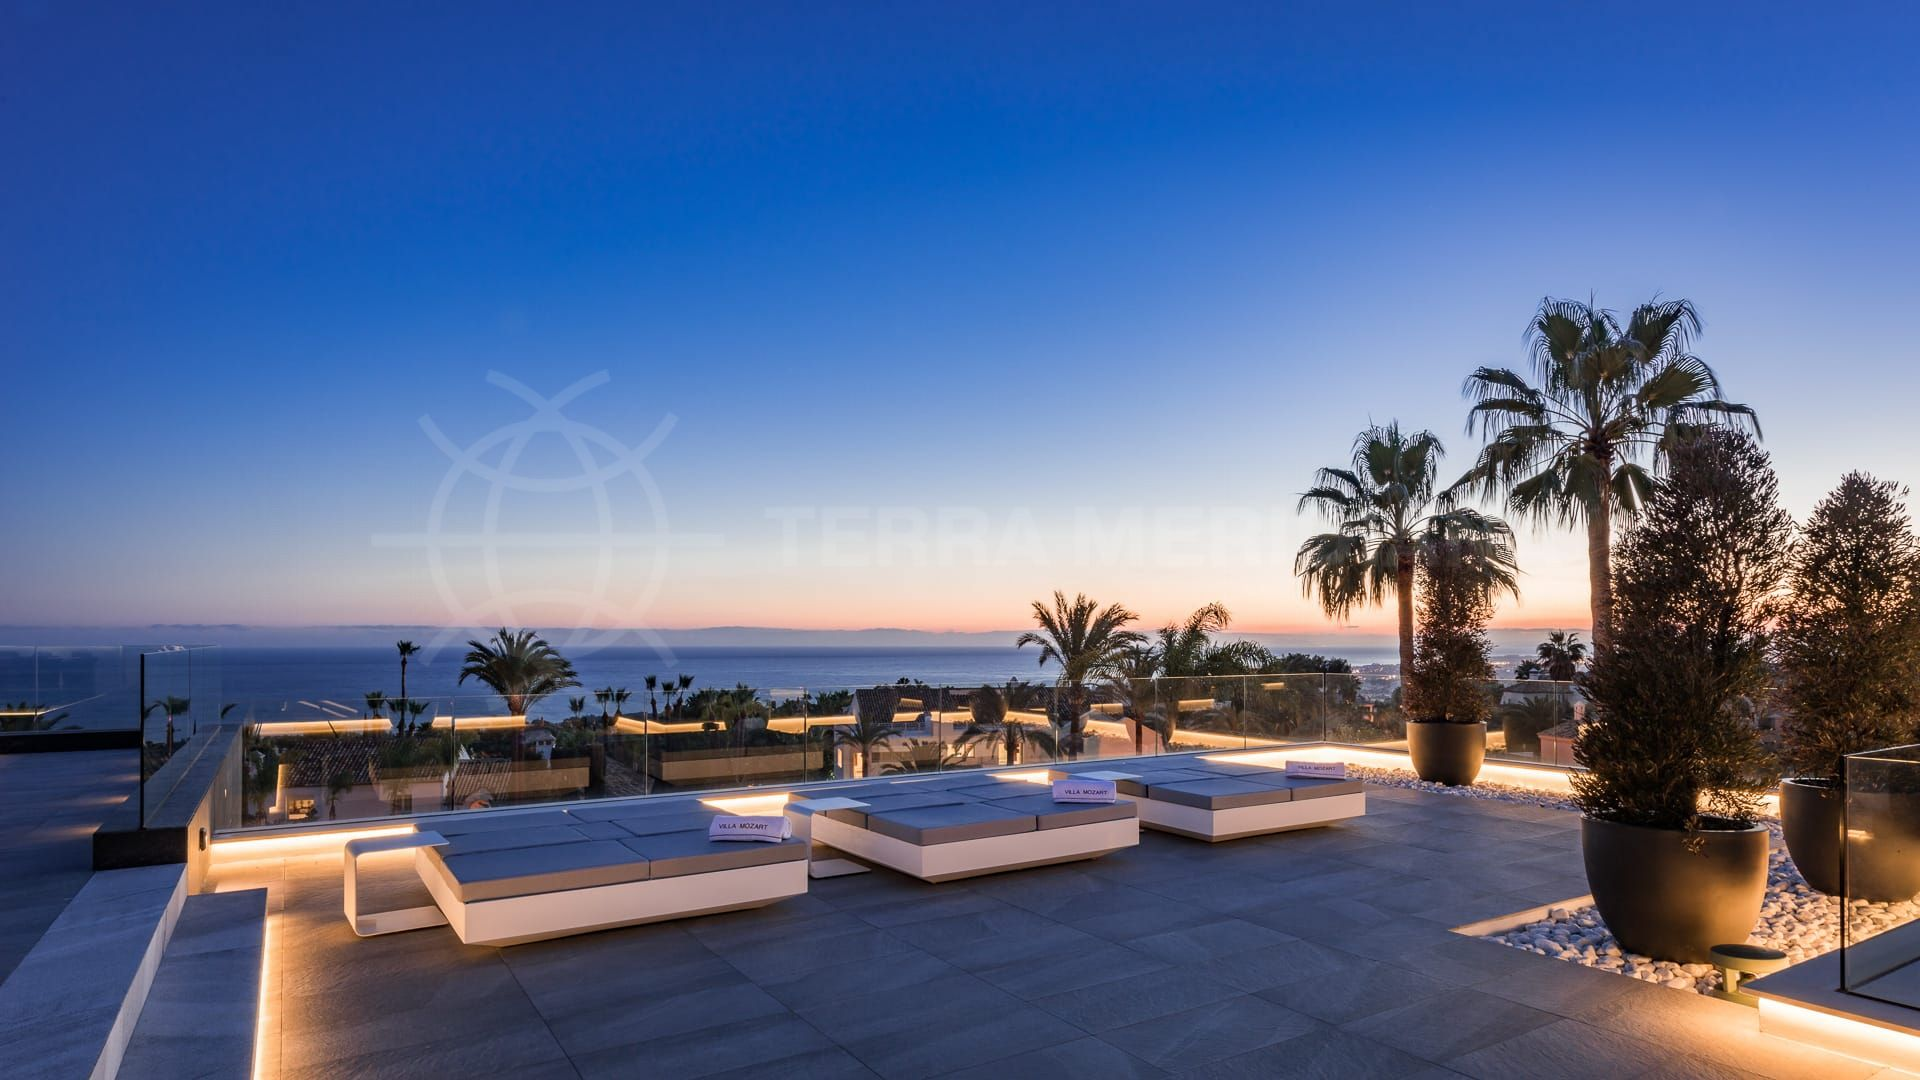 Sierra Blanca Property, a country club on the edge of Marbella